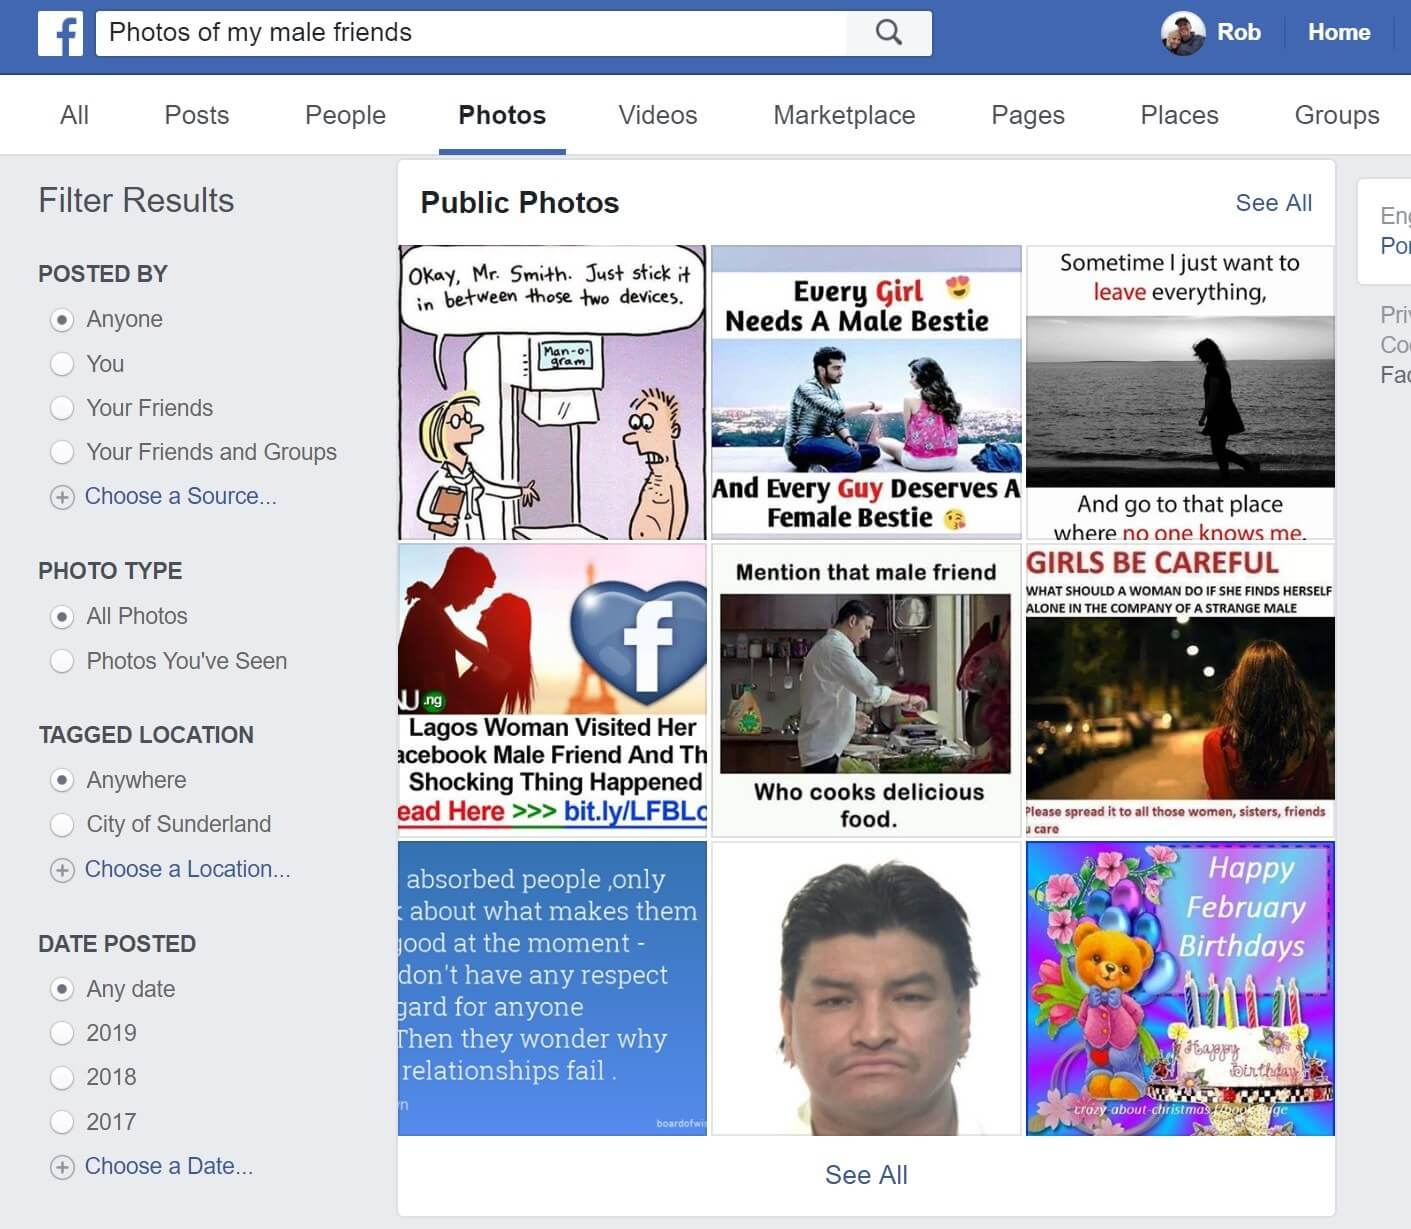 Facebook search feature brings up photos of female friends, but it